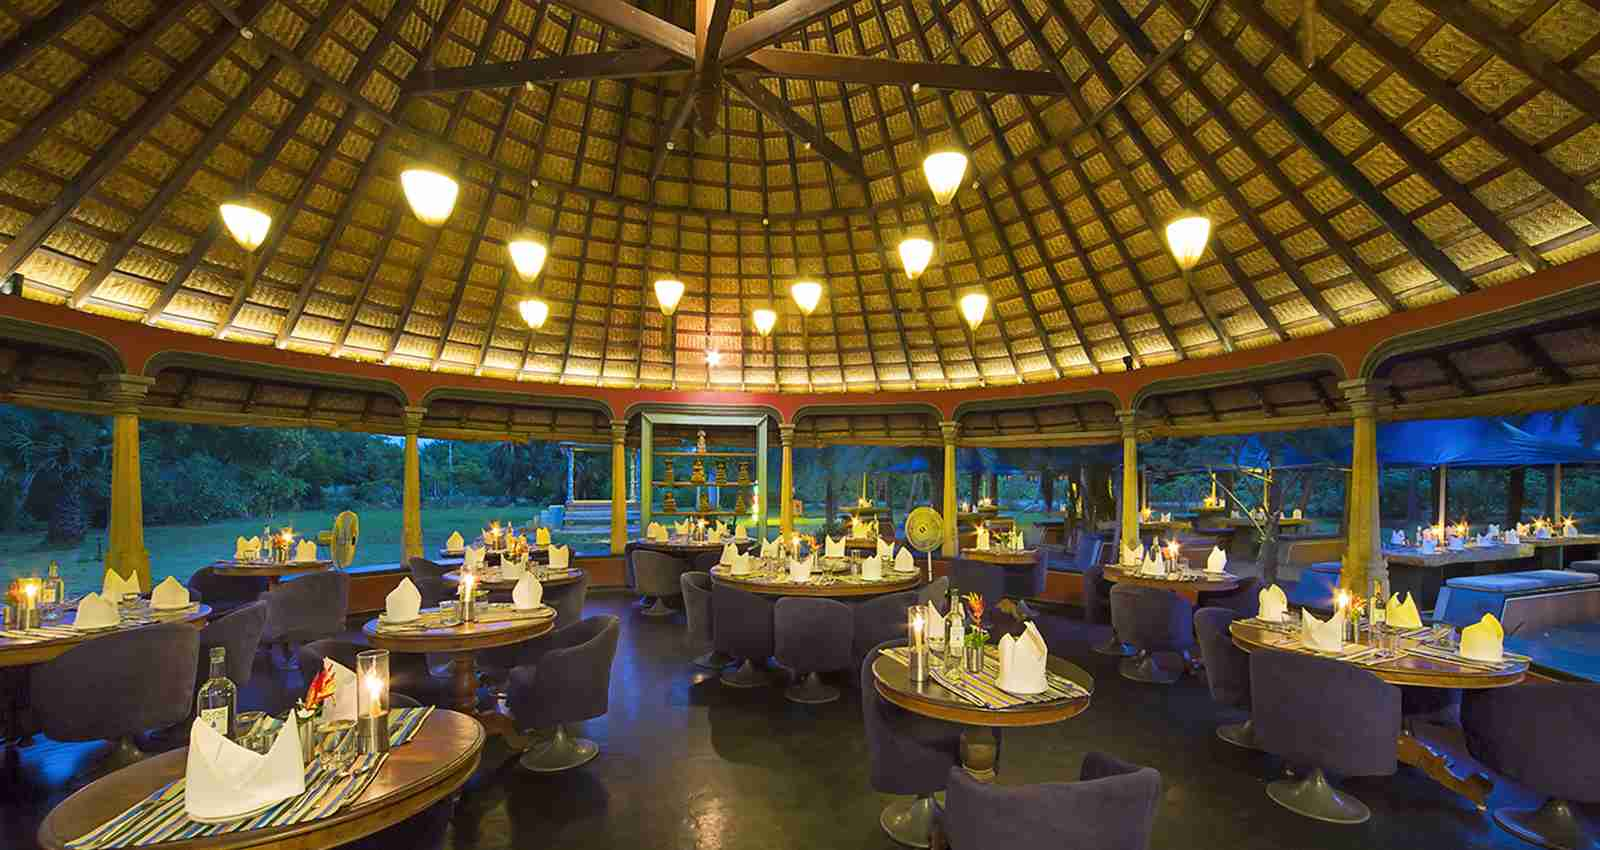 Dune Eco Village and Spa FUN Restaurant Inside view